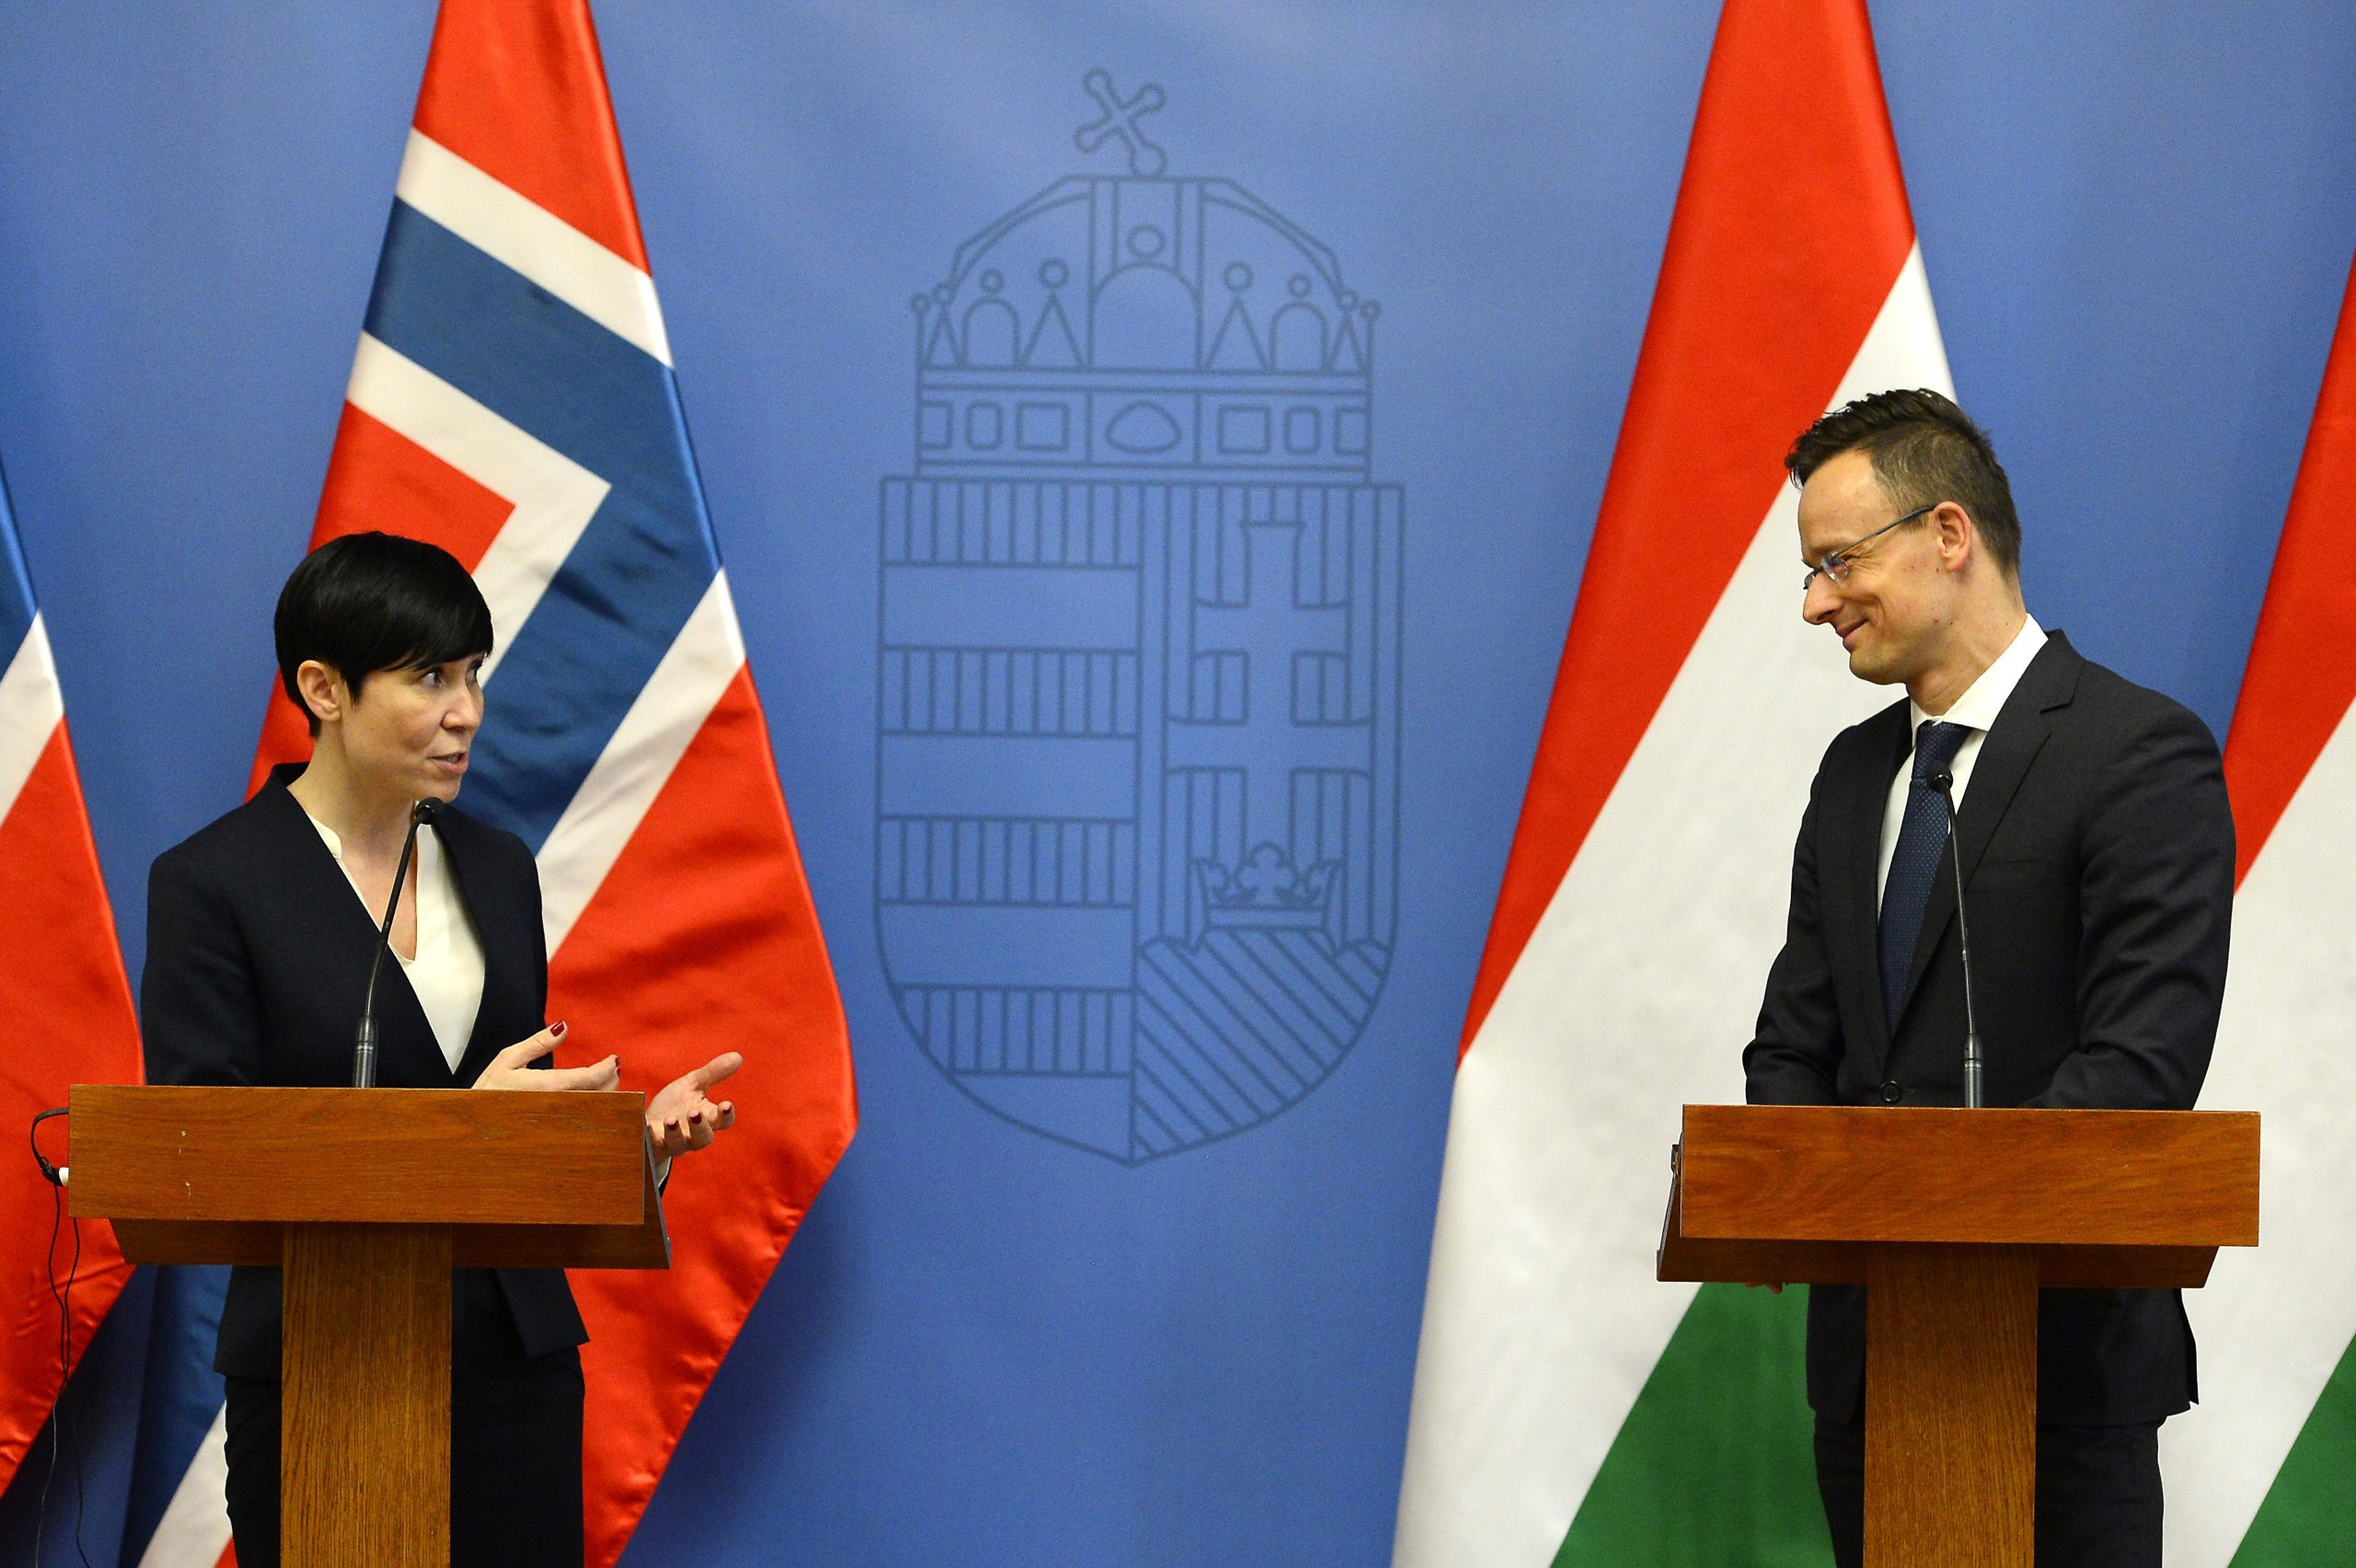 Norway: Hungary Has No Basis to Take Legal Action over Norway Grants